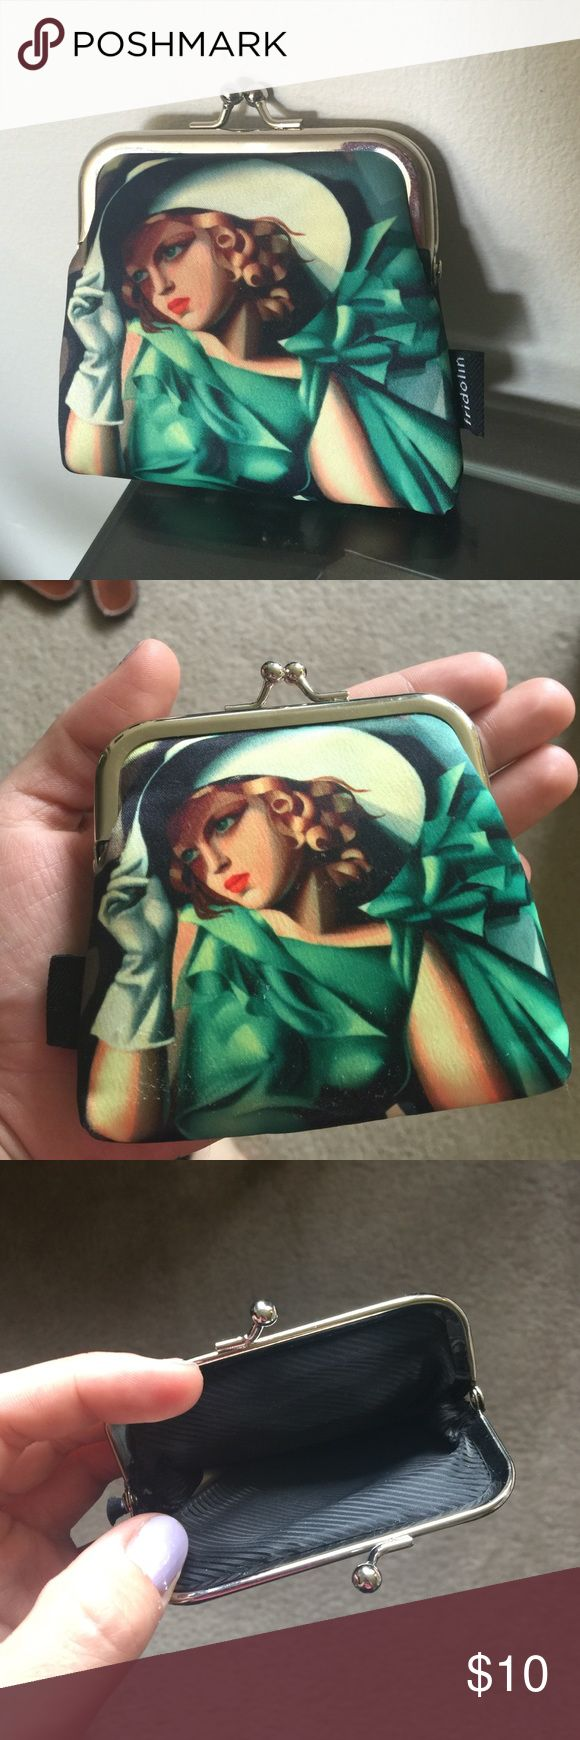 Retro coin pouch never used! Beautiful little coin clutch! I never used it! I bought it in London but never put money in it. Its new. Bags Clutches & Wristlets